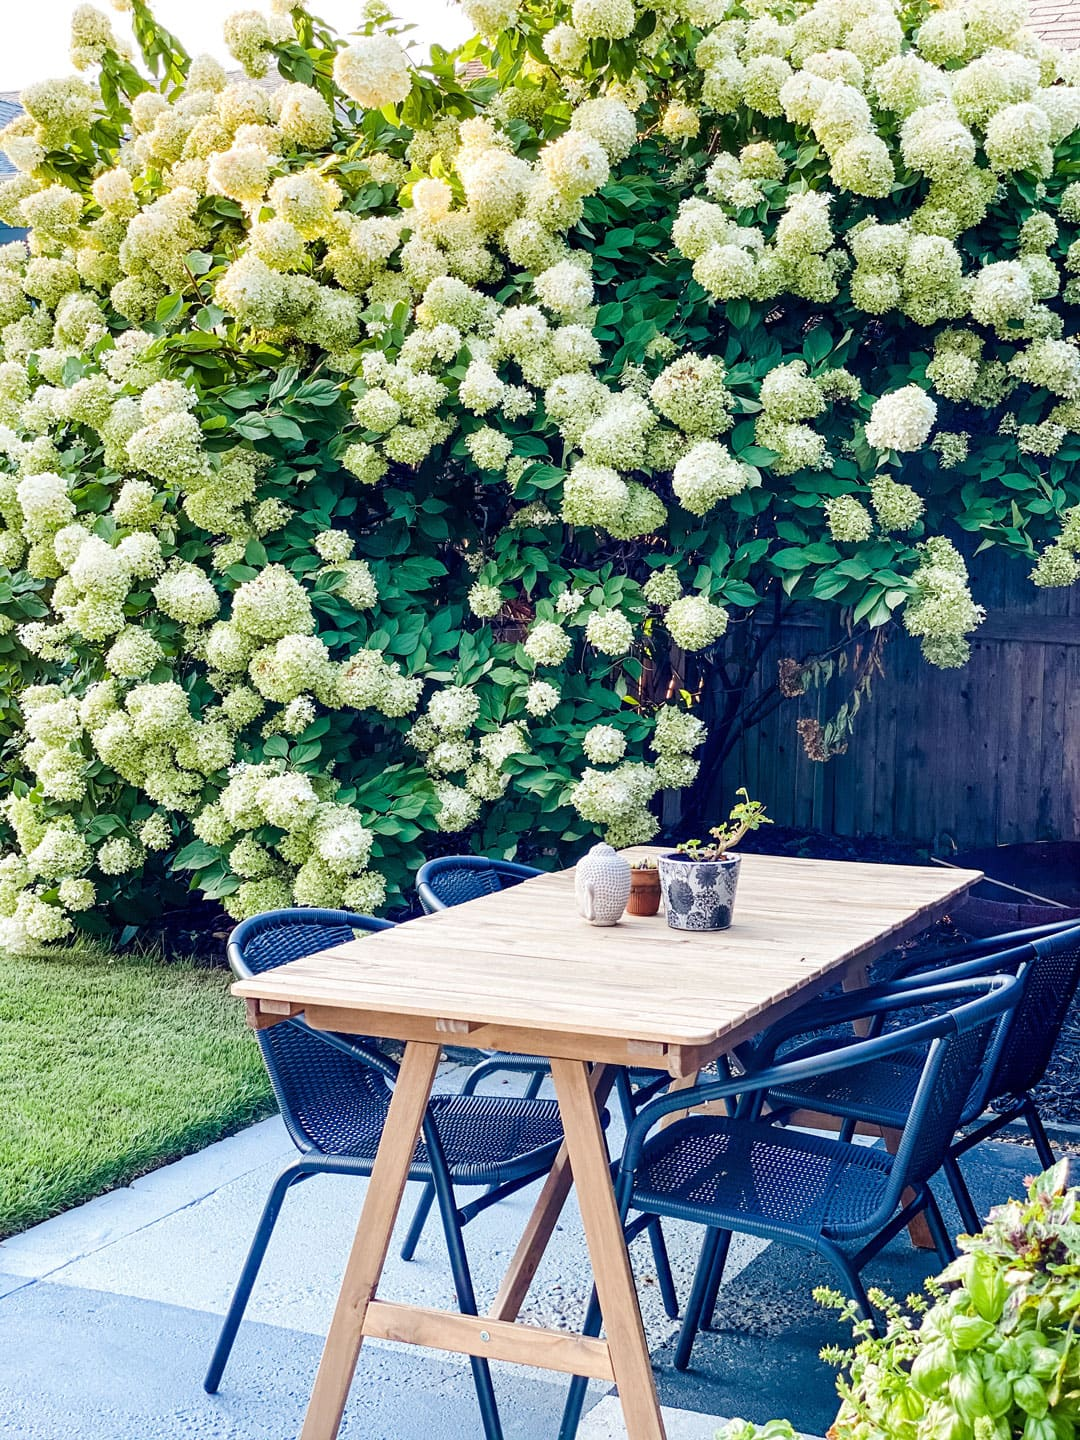 Lifestyle Blogger Annie Diamond shares an article about How and When to Deadhead your Hydrangeas